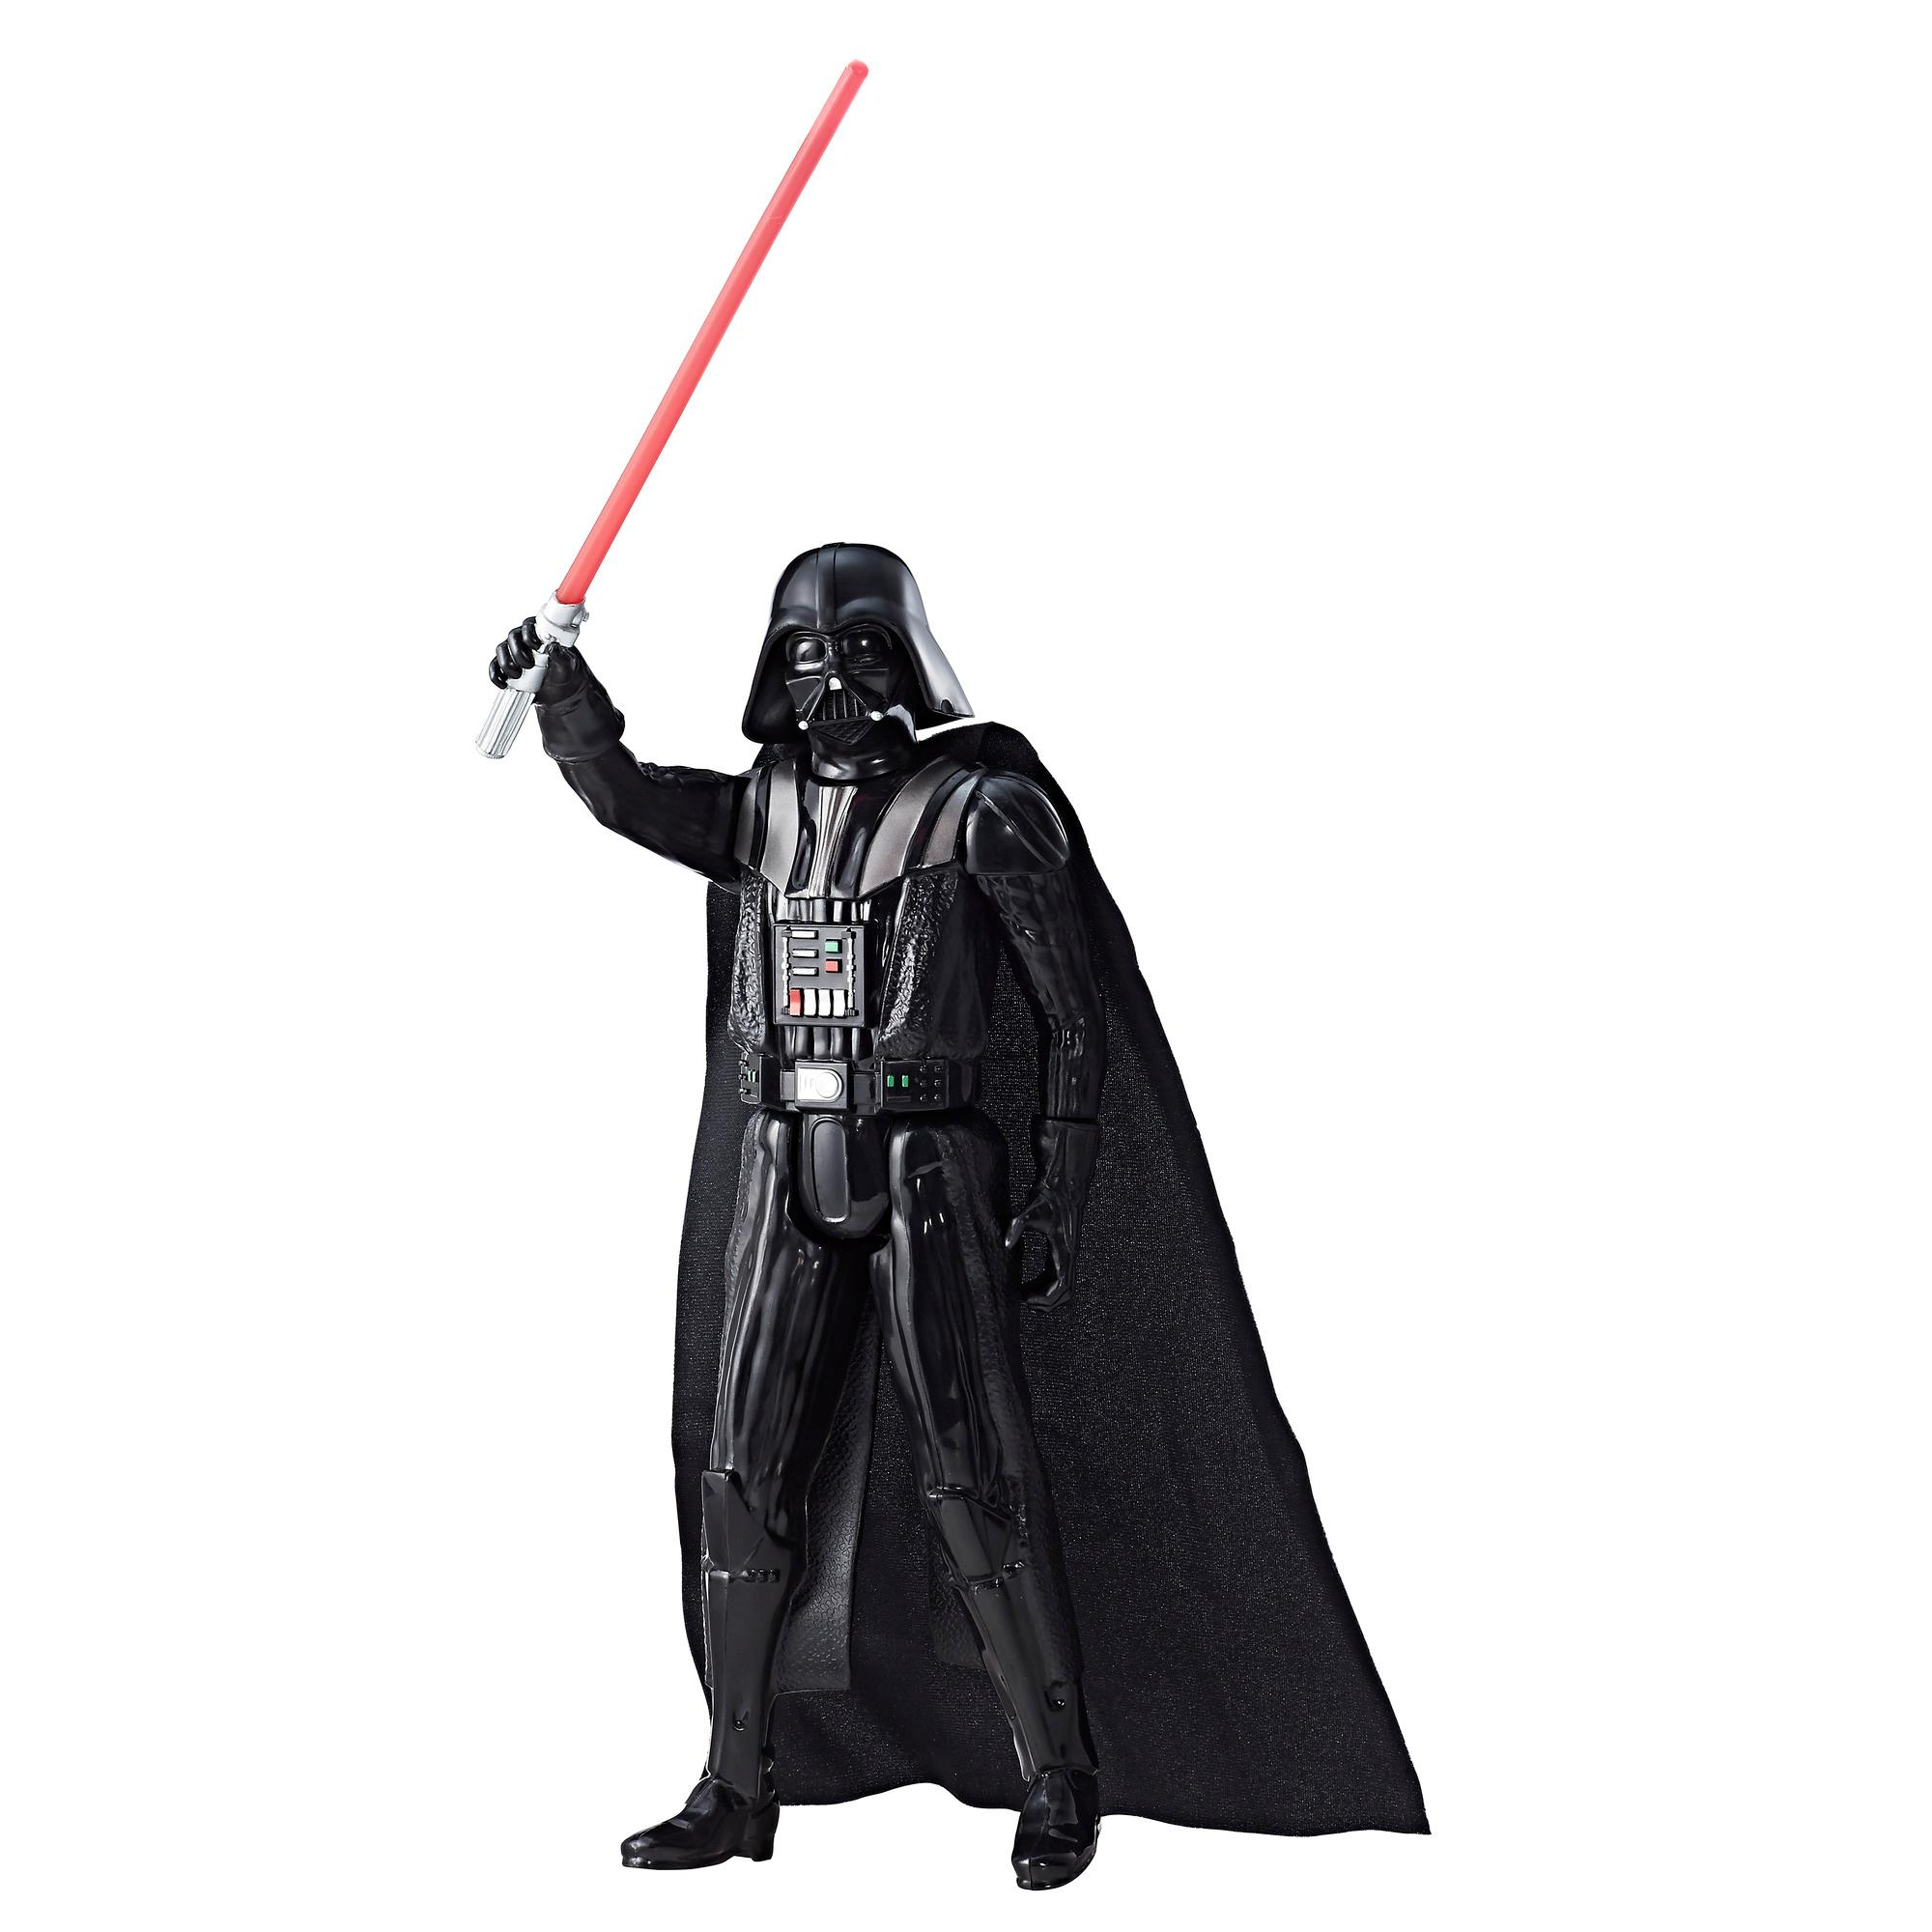 Star Wars: Rogue One 12-inch scale Darth Vader Figure